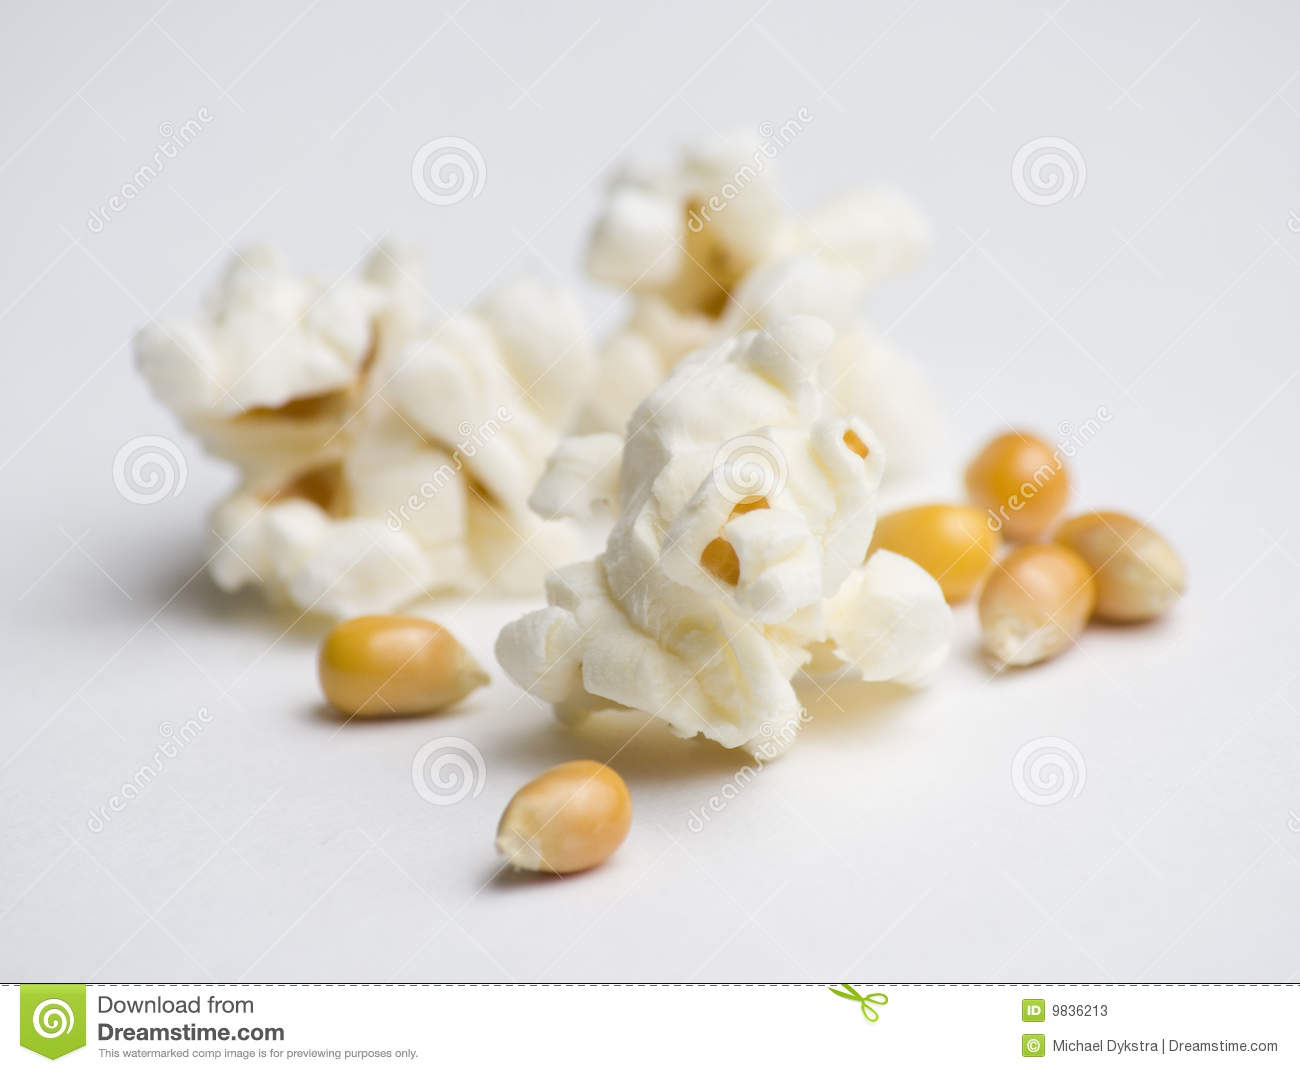 which brand of popcorn pops up the Move over, movie theater butter popcorn brands are branching into creative new flavor territories (sriracha, anyone) and coming up with some creatively delicious ideasfrom savory to sweet, here are 13 of our current favorite gourmet popcorns to take snack time to the next level.